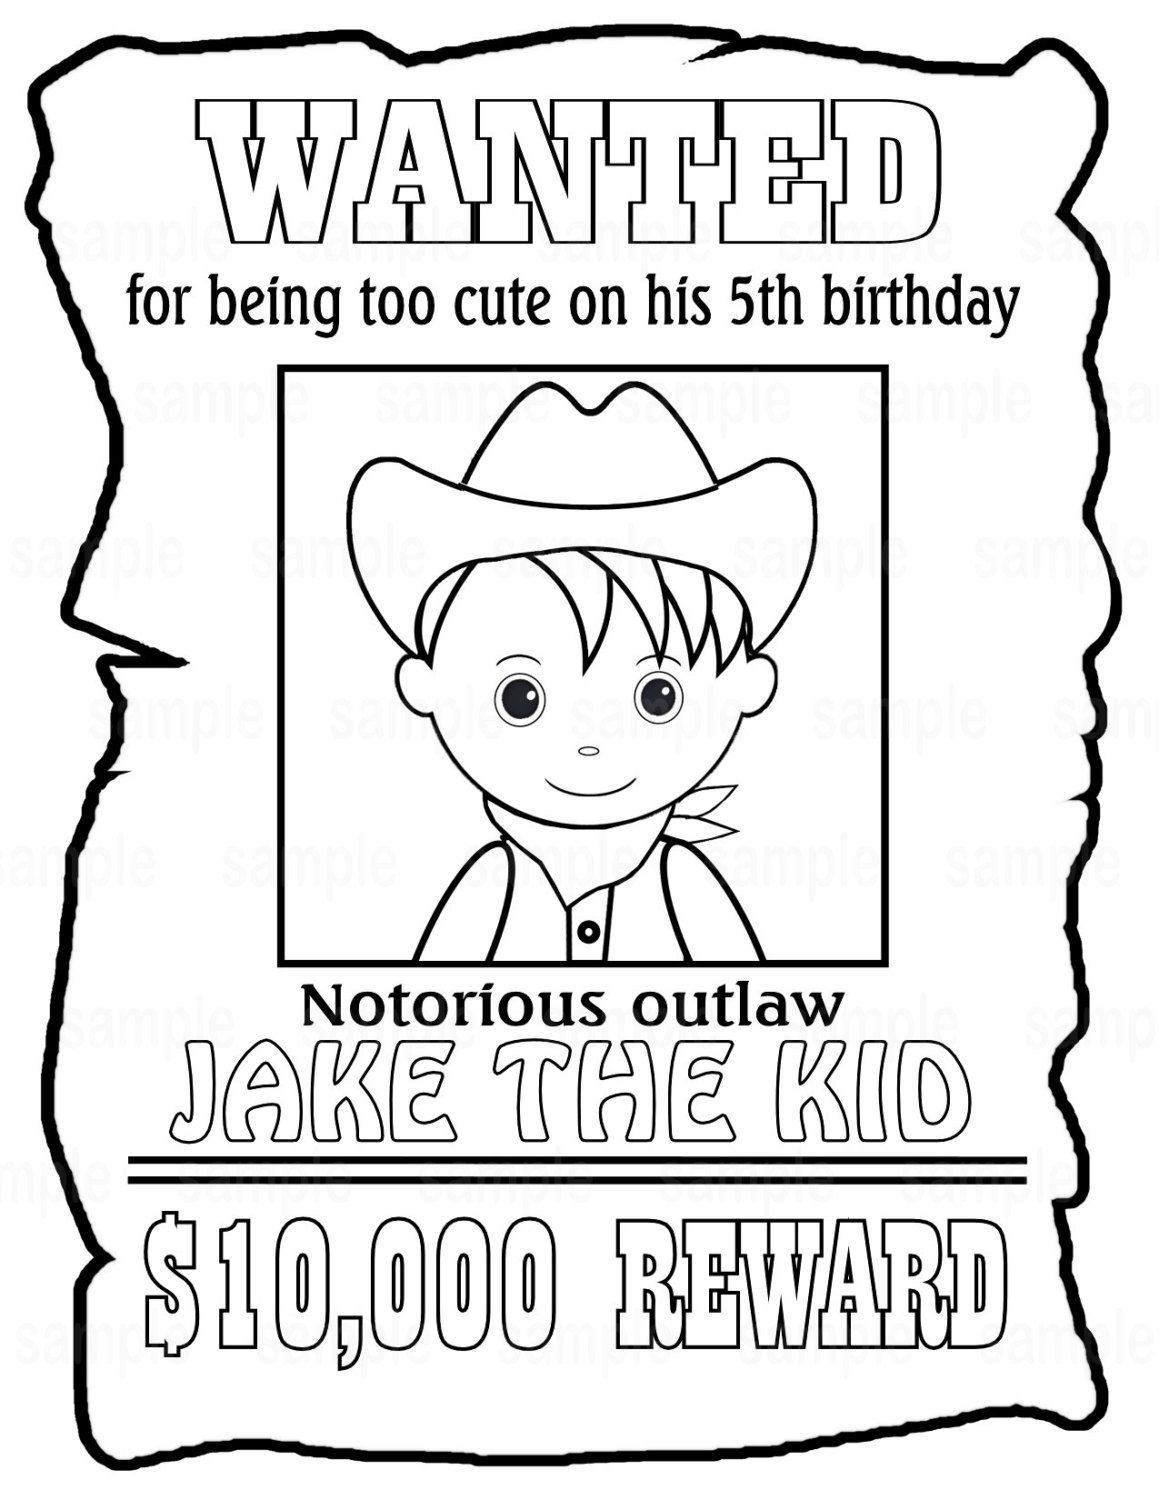 Personalized Printable Wanted Cowboy Poster Birthday Party Favor Childrens Kids Coloring Page